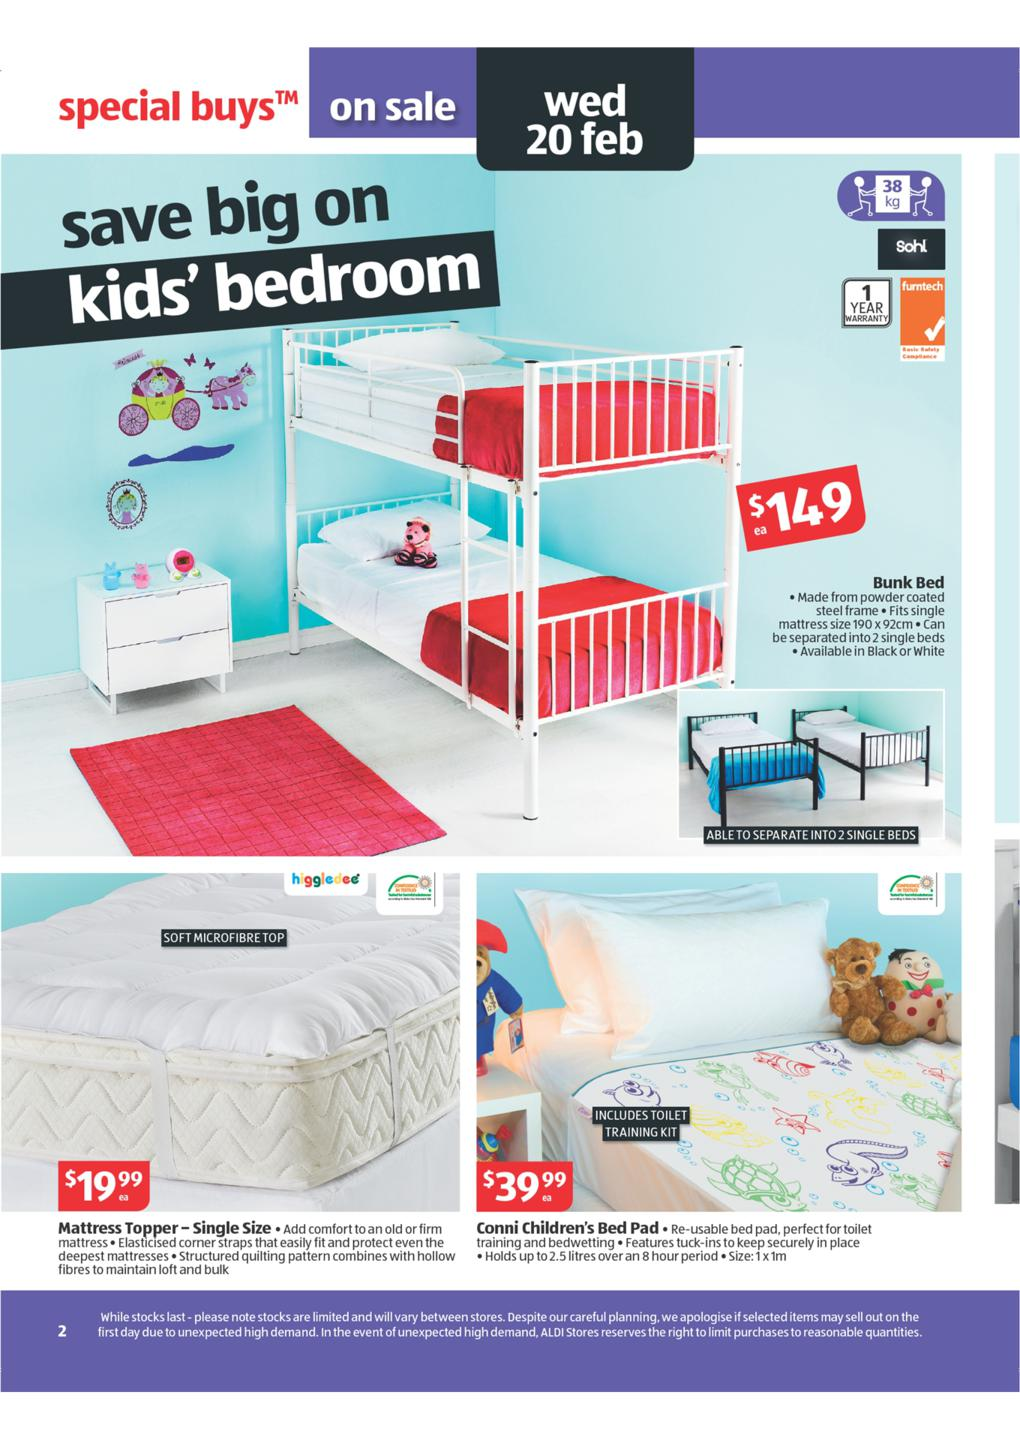 Aldi Catalogue Special Buys Wk 8 2013 Page 2